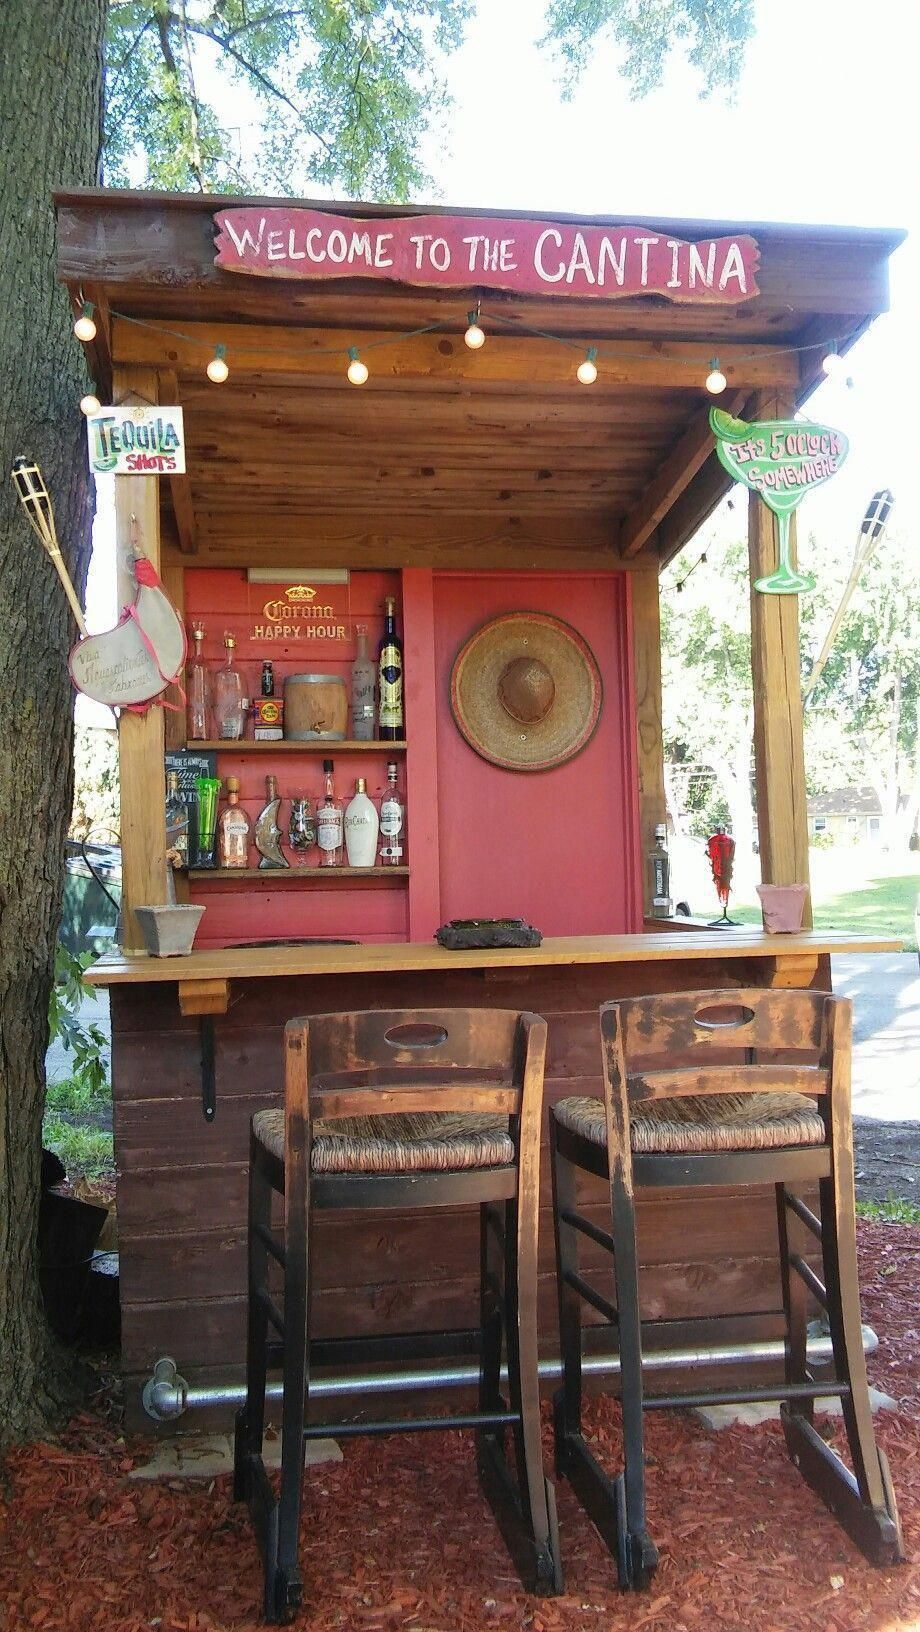 How To Store Your Fridge Rustic Outdoor Kitchens Backyard Bar Outdoor Cooking Area